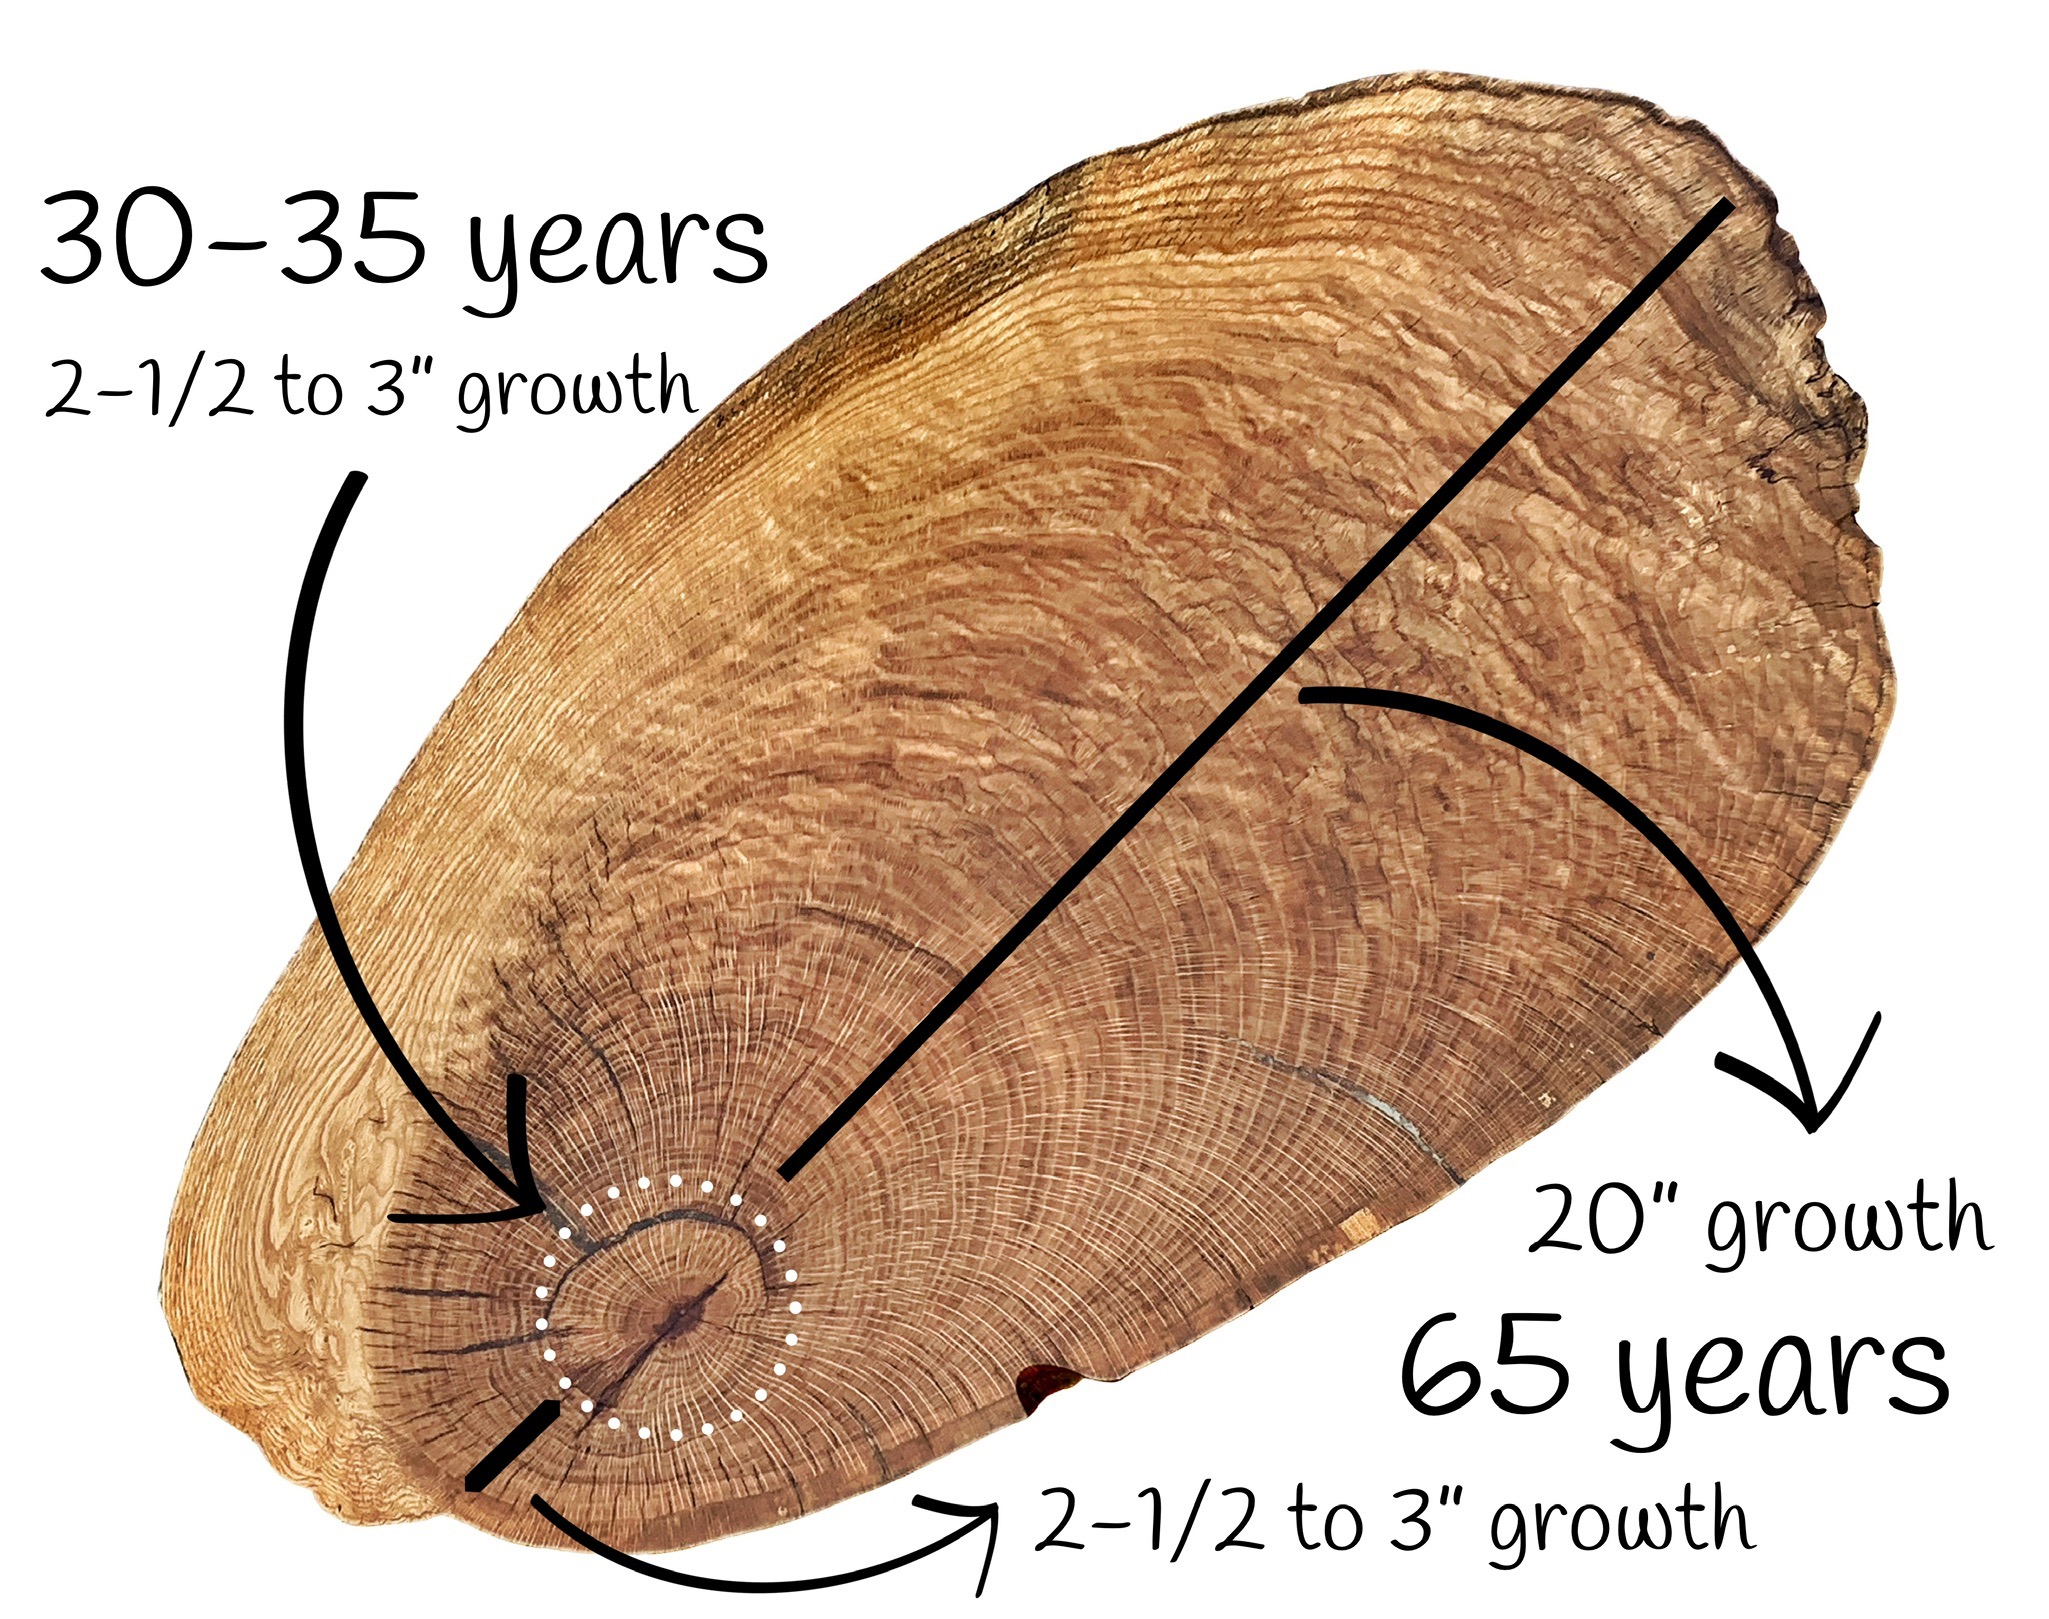 "Figure 2 :  Tension wood growth (upside)  - 20"" growth/65 years;  Compression wood growth (underside)  - 2-1/2"" to 3"" growth/65 years"